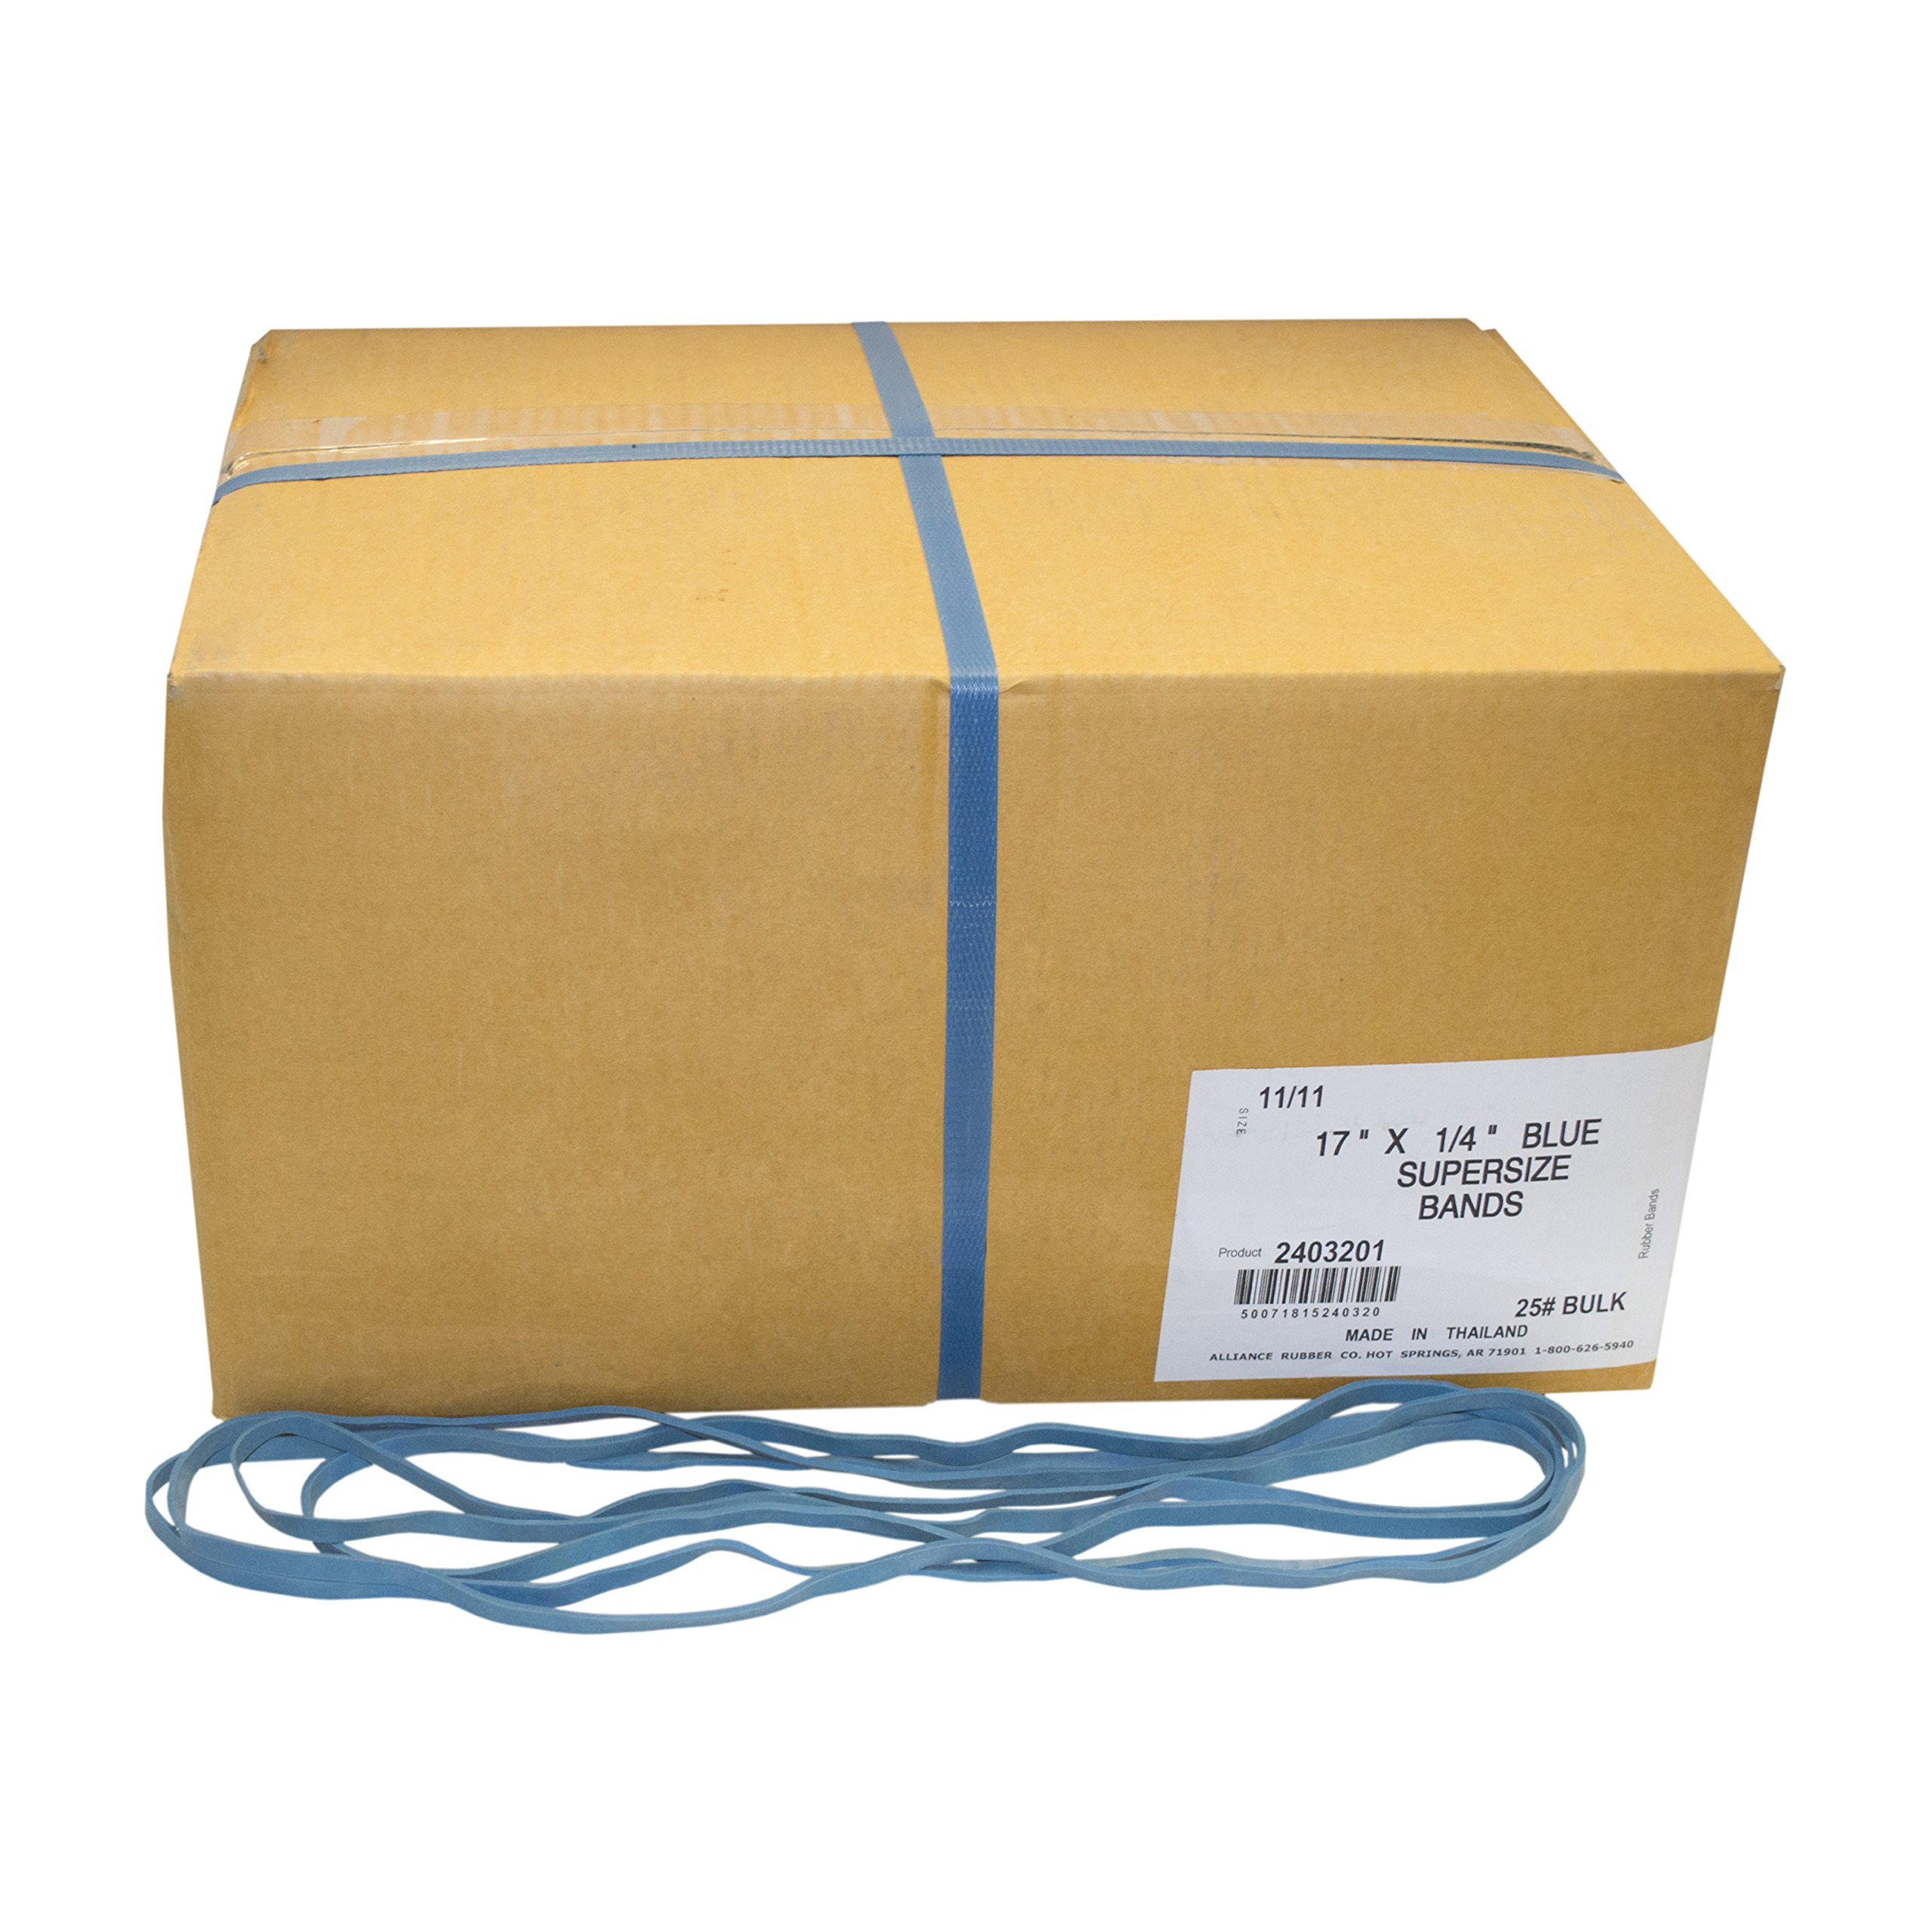 Alliance Rubber 2403201 SuperSize Bands, 17'' Blue Large Heavy Duty Latex Rubber Bands (25 lb carton contains approx. 40-50 bands per lb)